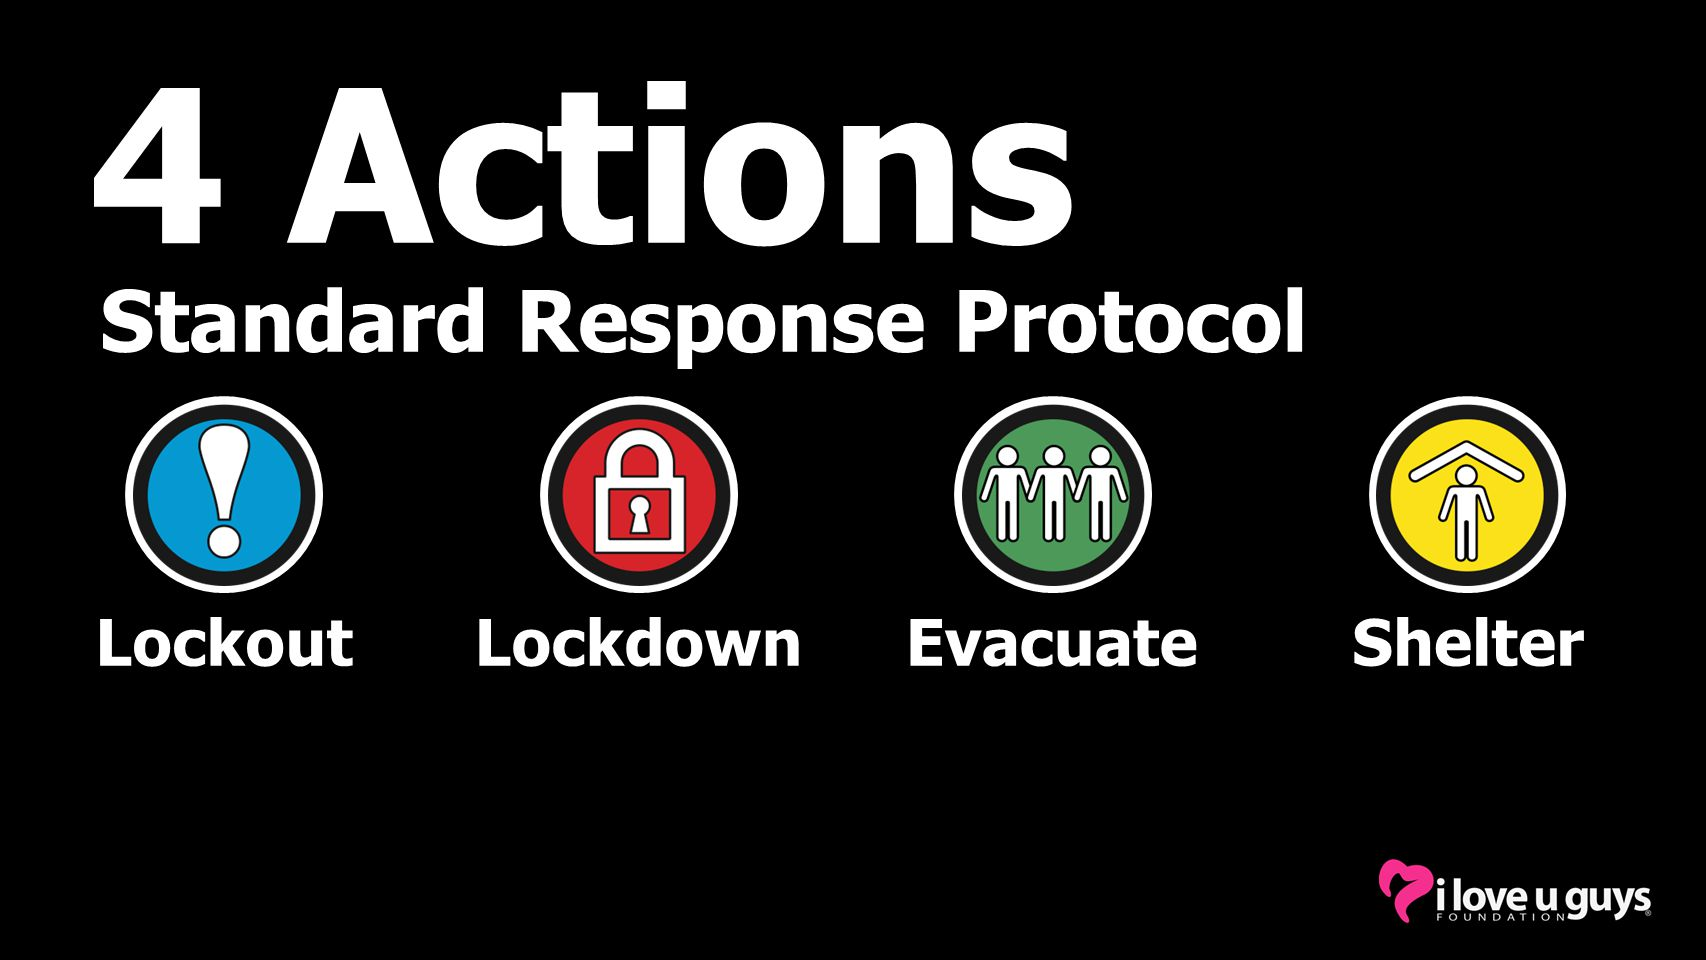 4 Actions Standard Response Protocol Lockout Lockdown Evacuate Shelter